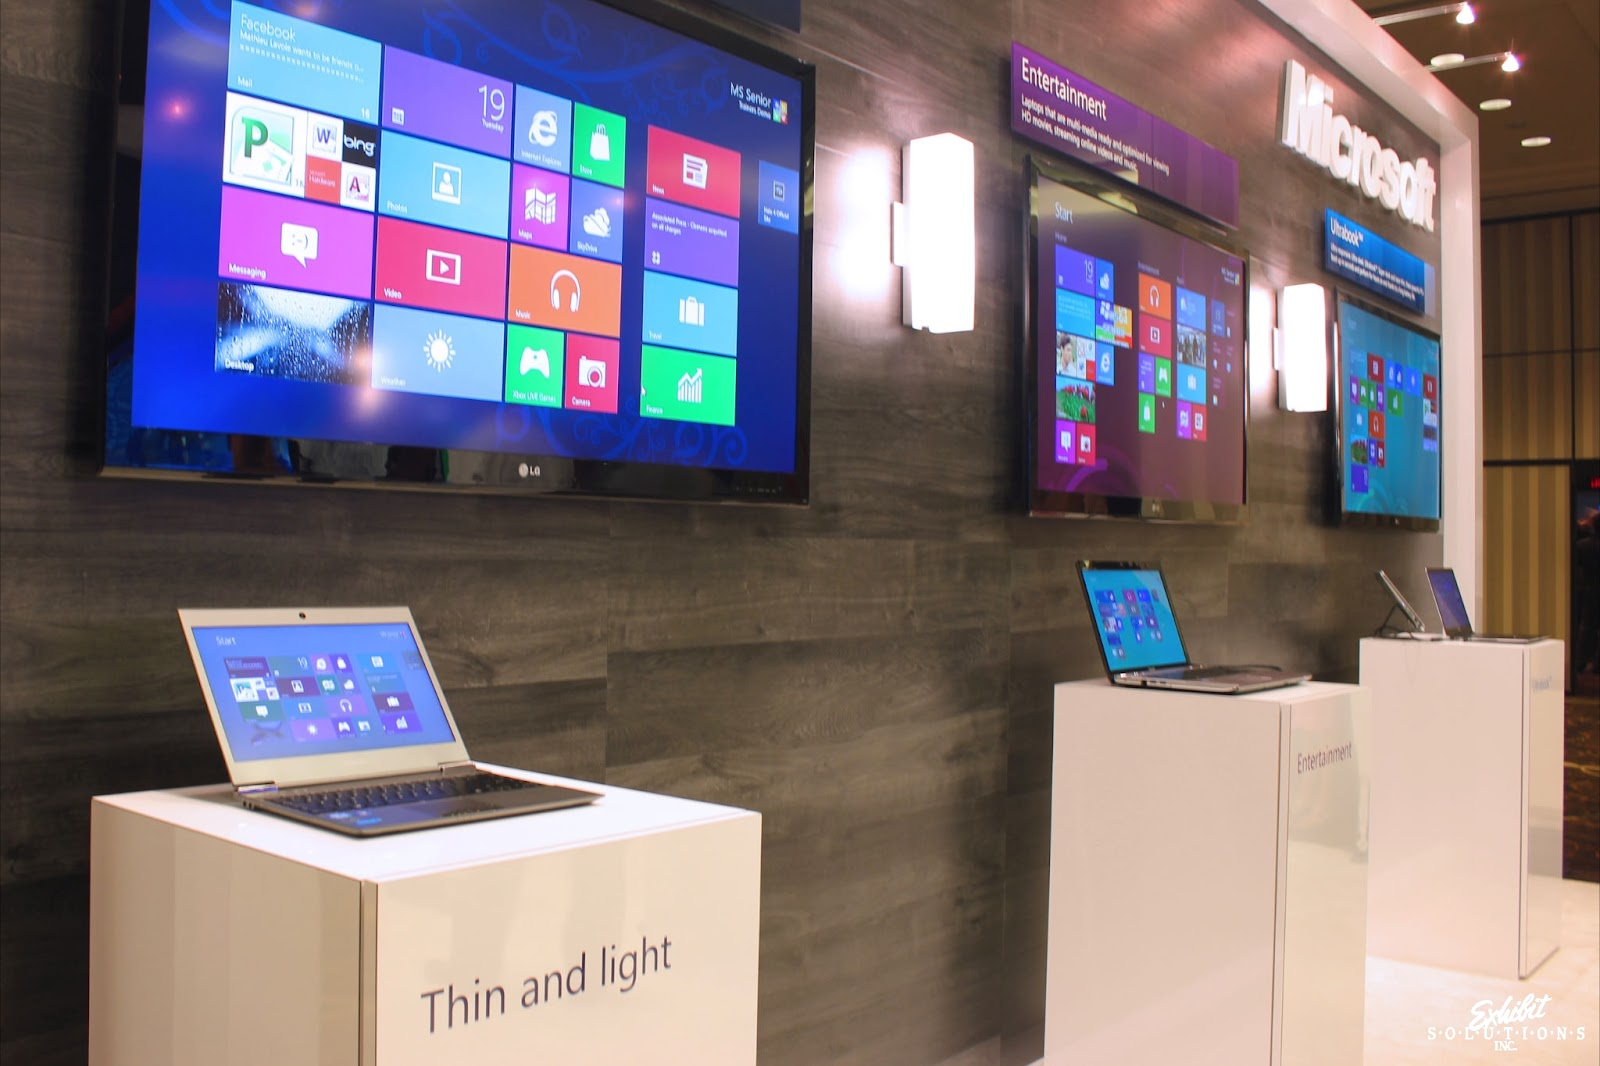 Exhibit Solutions - Microsoft - Future Shop Home Office Show 2012 - 08.JPG